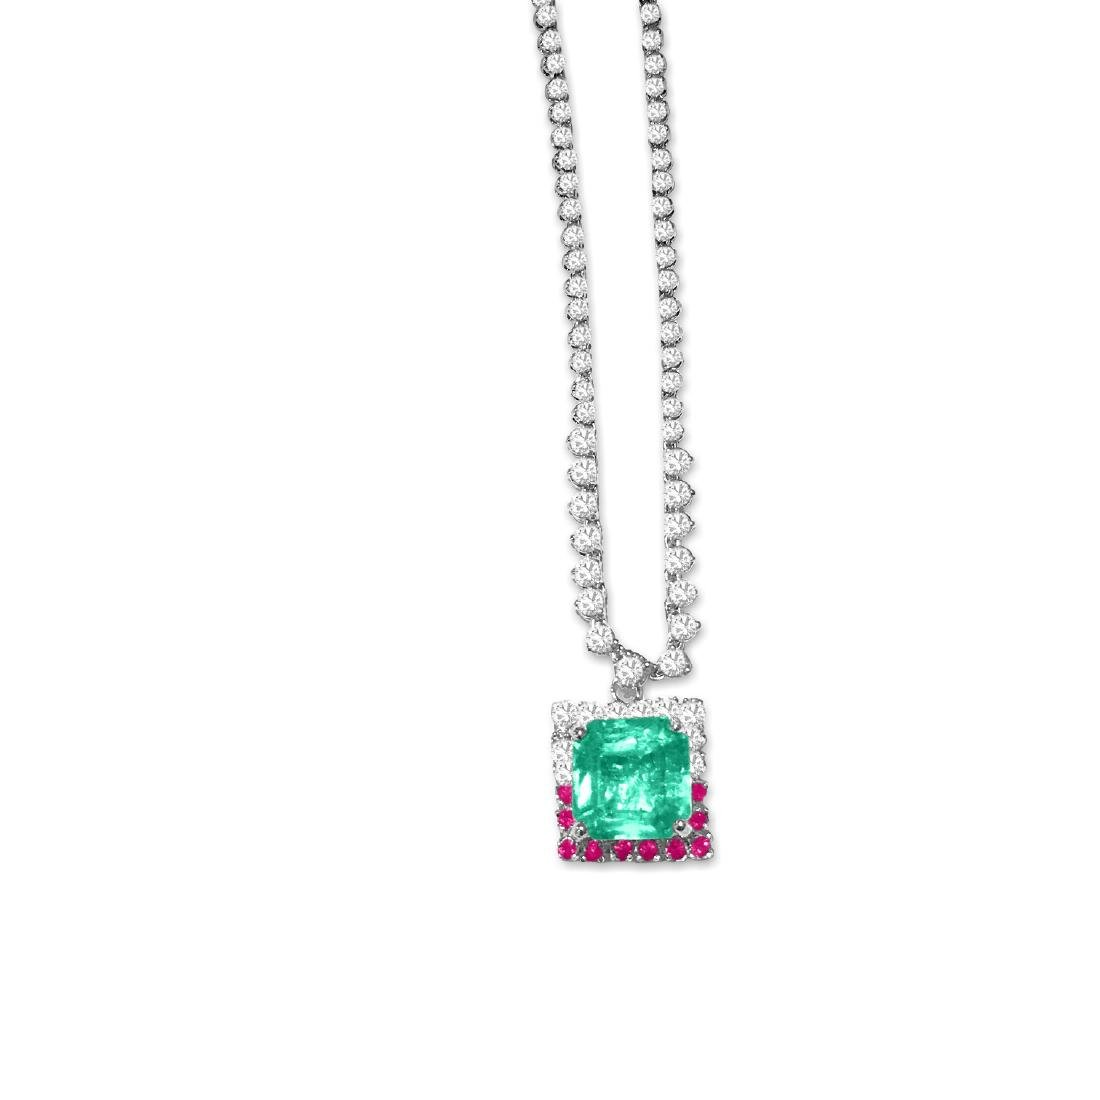 14K Gold; Emerald, Ruby and Diamond Necklace. $40,000